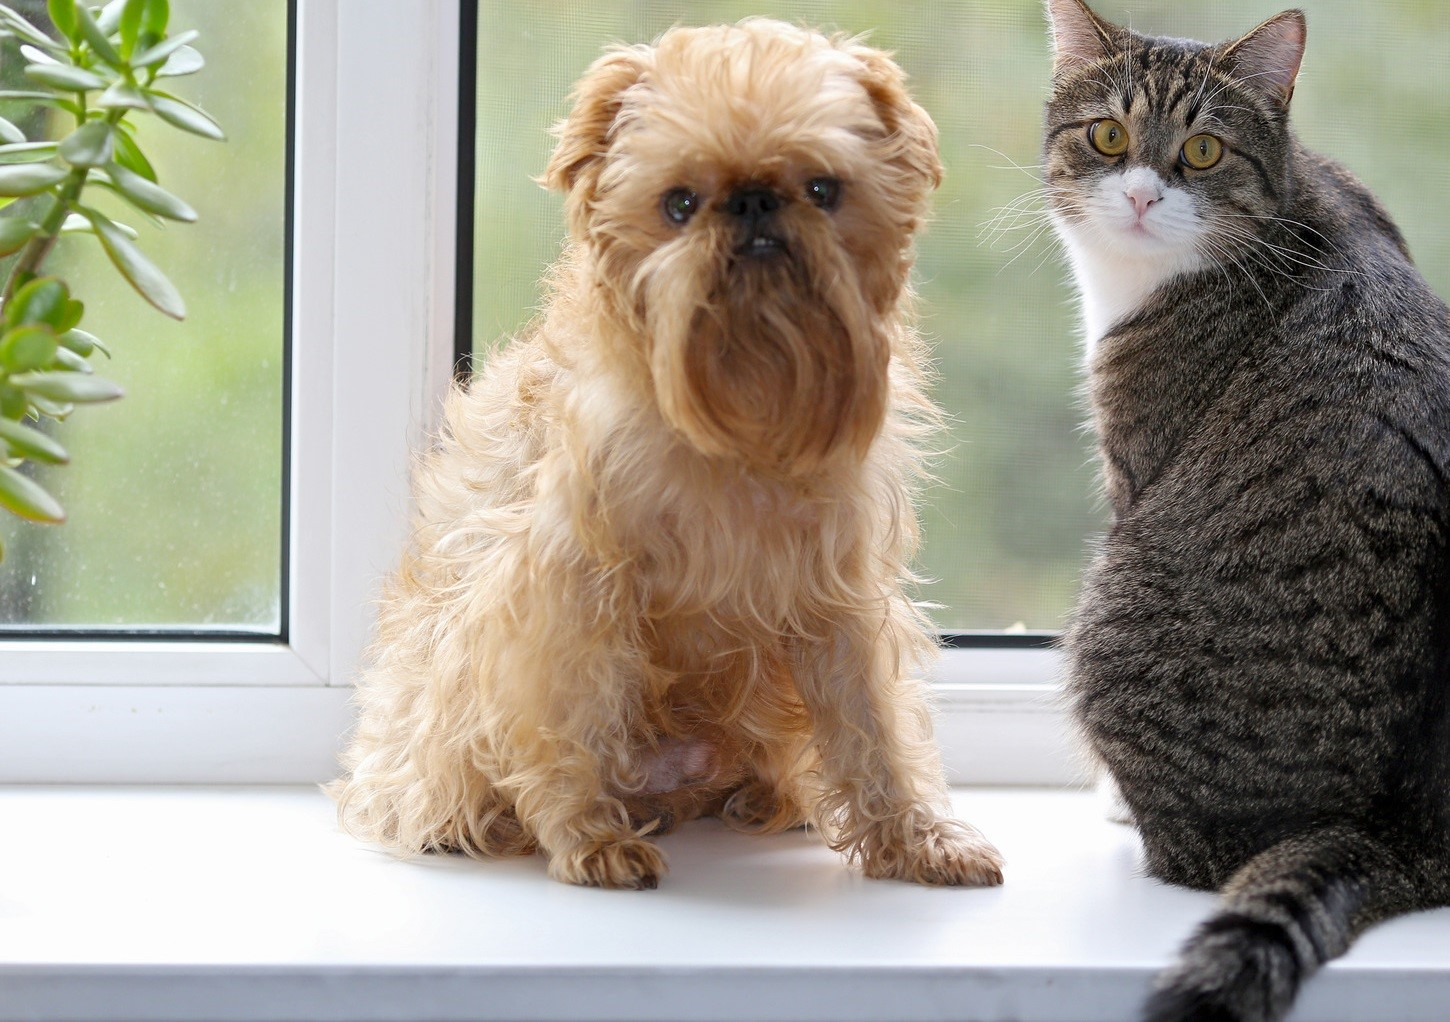 photodune-8728309-cat-and-dog-on-the-window-m-wide